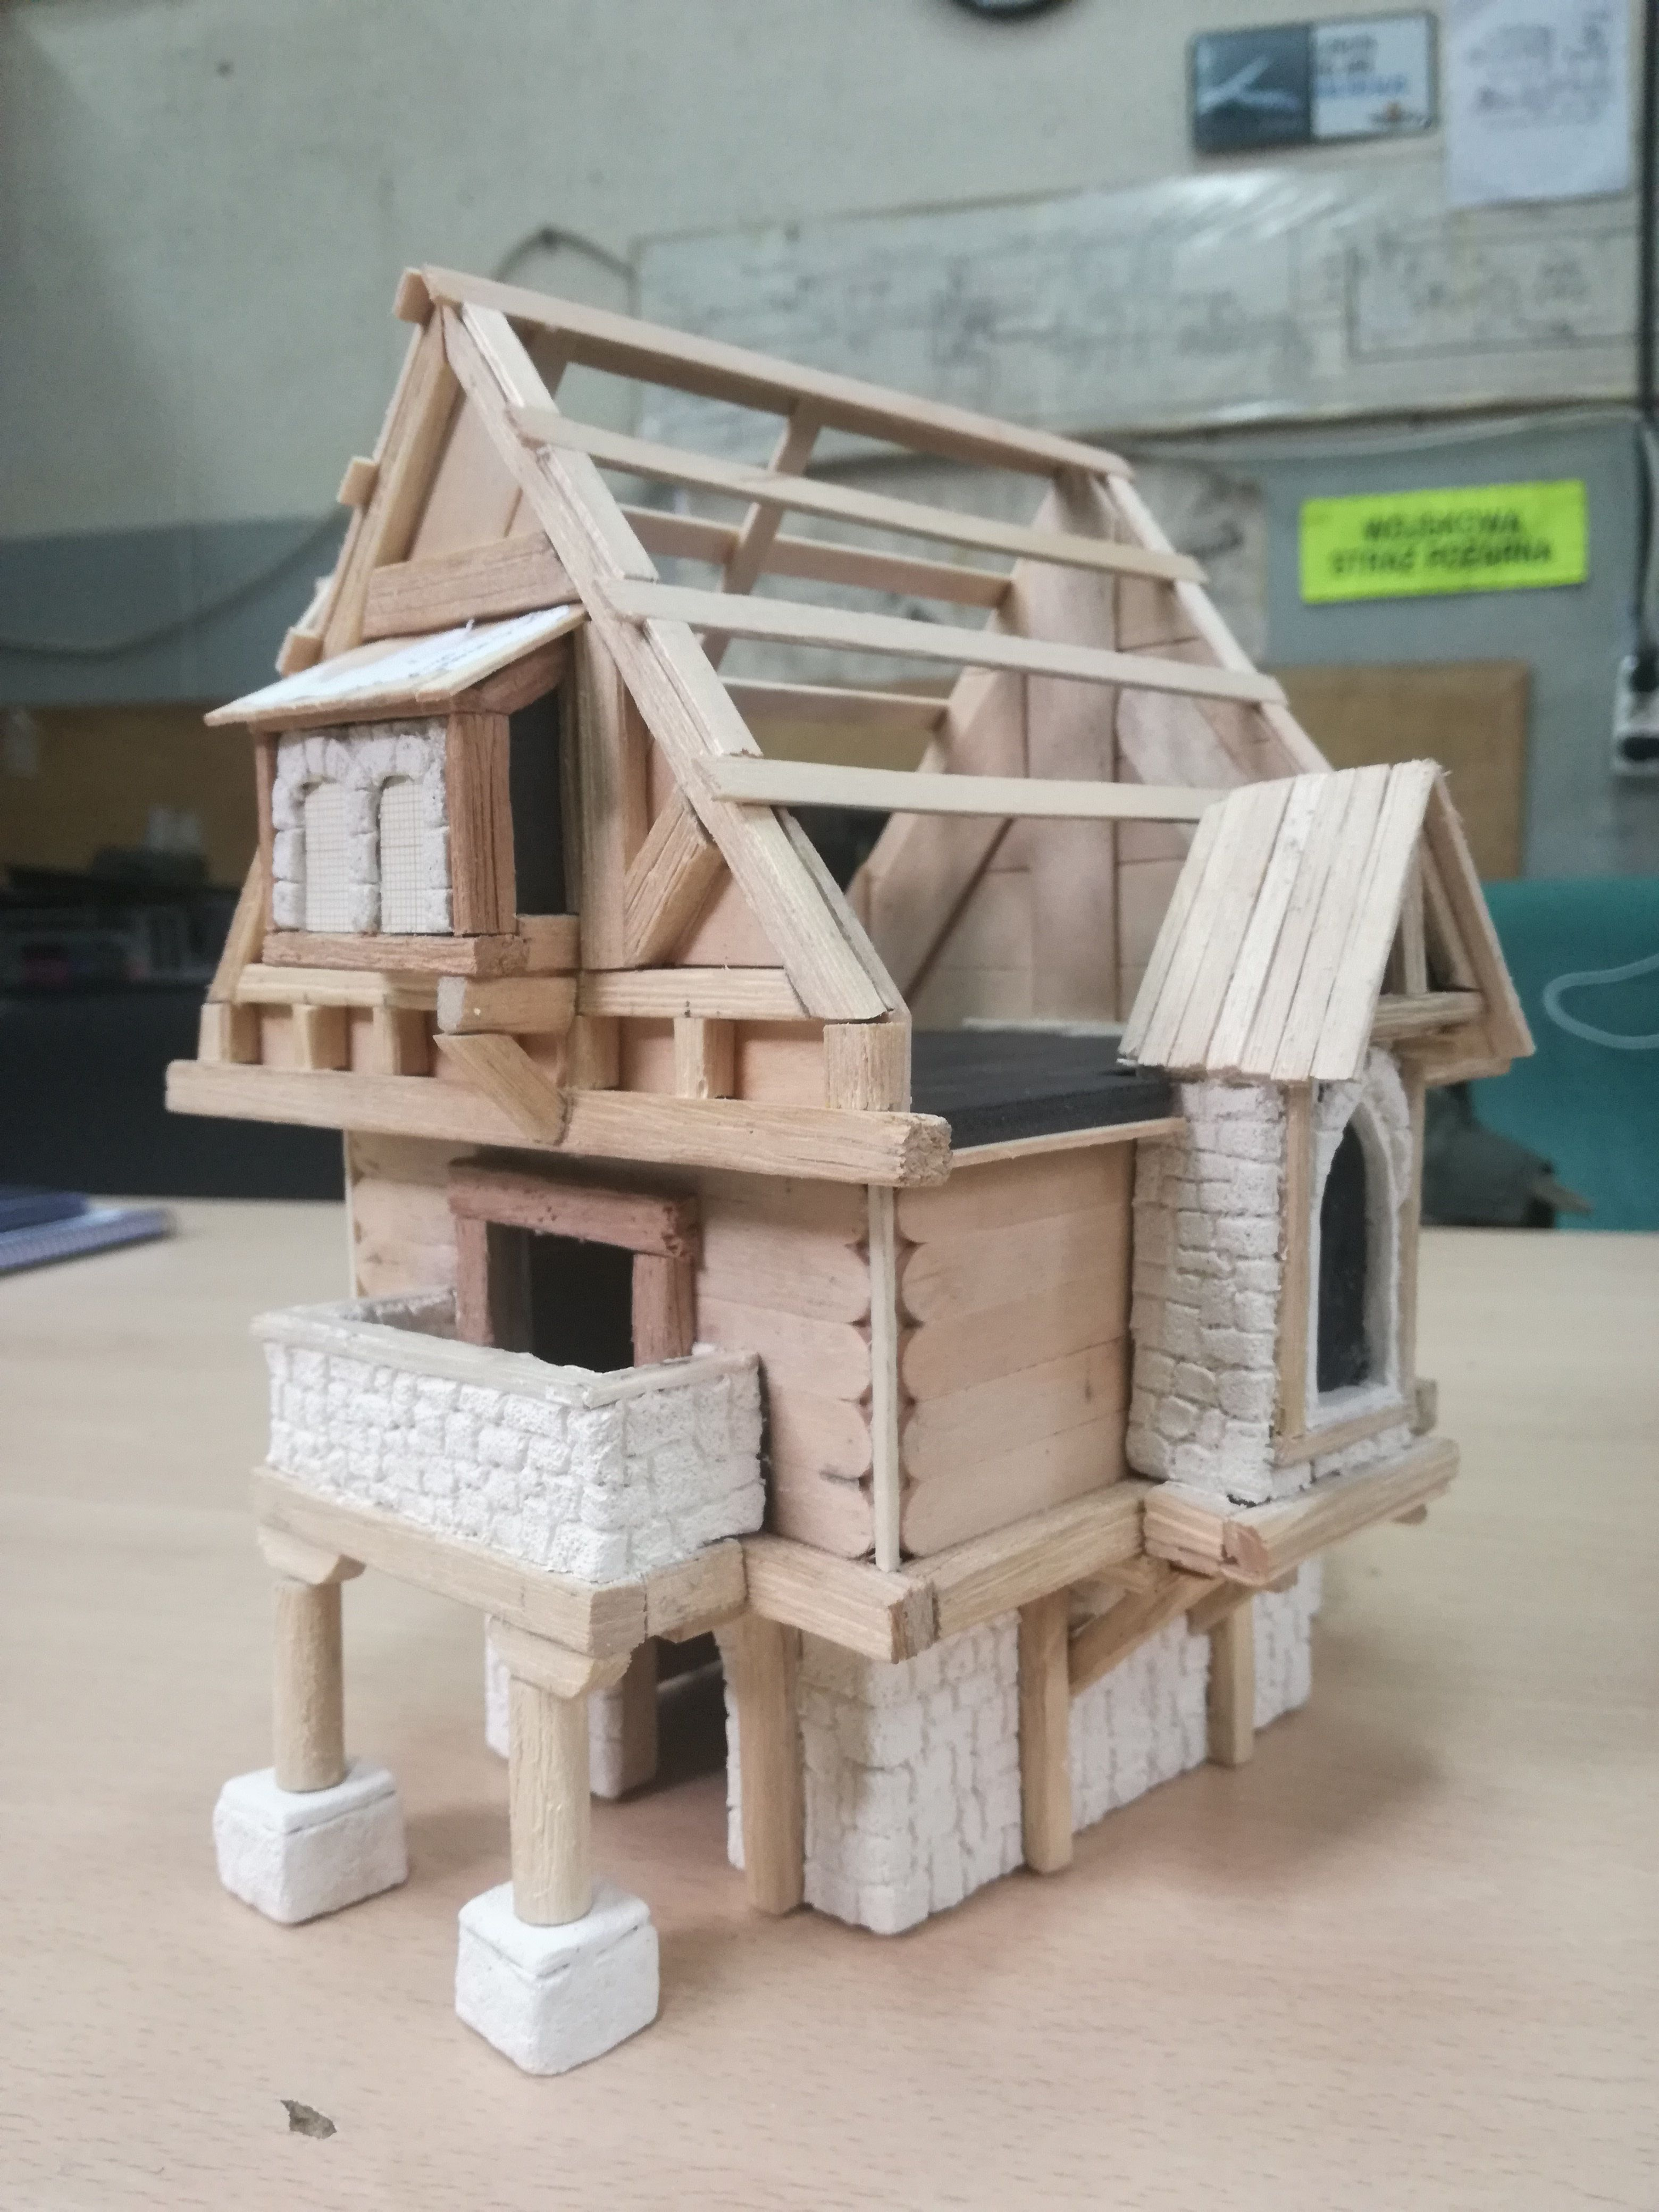 Pin by Pitchlink on tabletop gaming scenery | Simple house